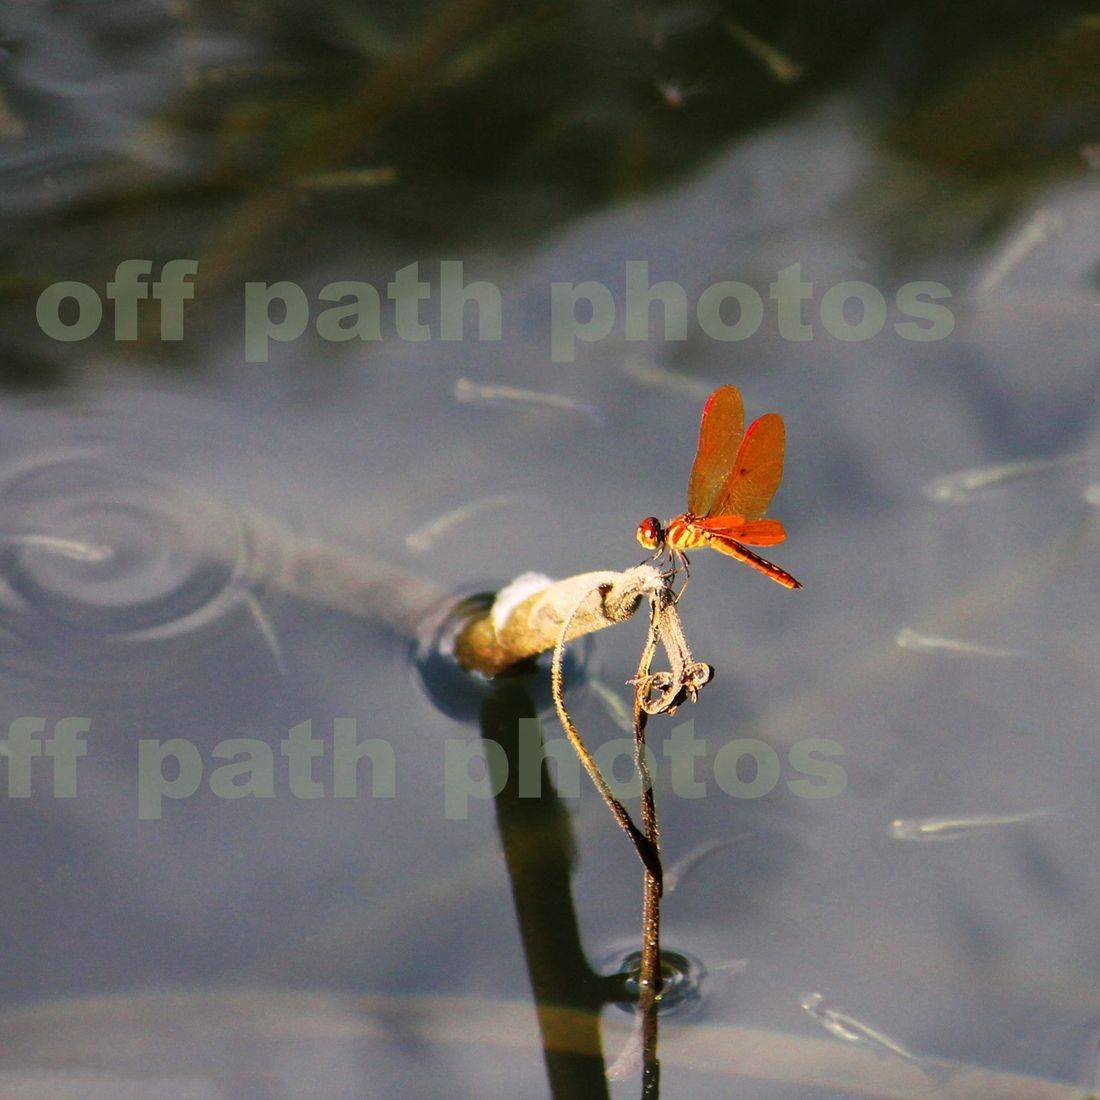 photography, nature, insects, minnows, water, ponds, dragonfly, bugs, fish